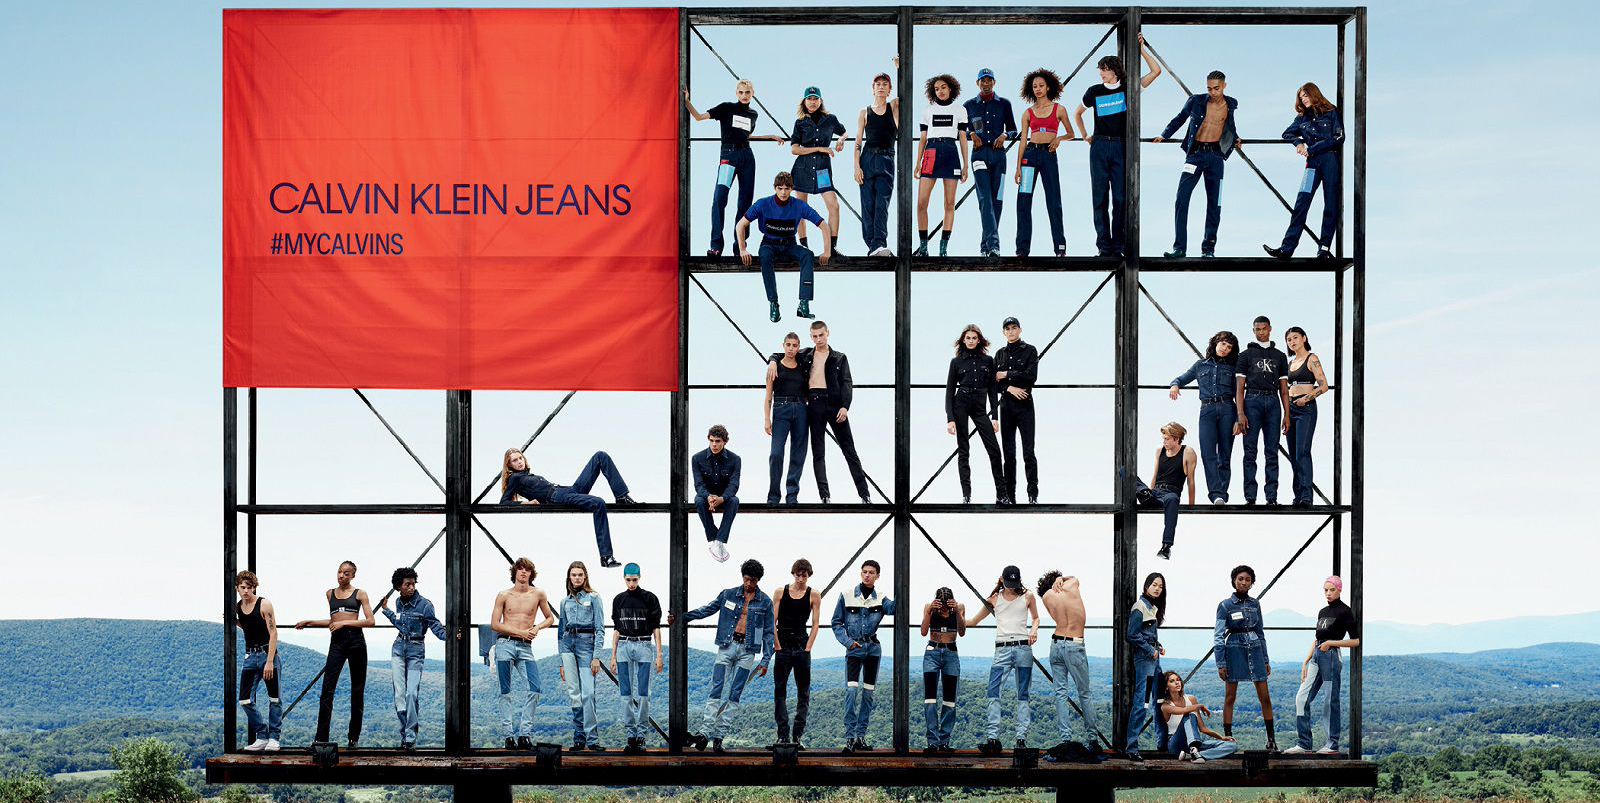 Calvin Klein Jeans Together inDenim Fall 2018 Ad Campaign